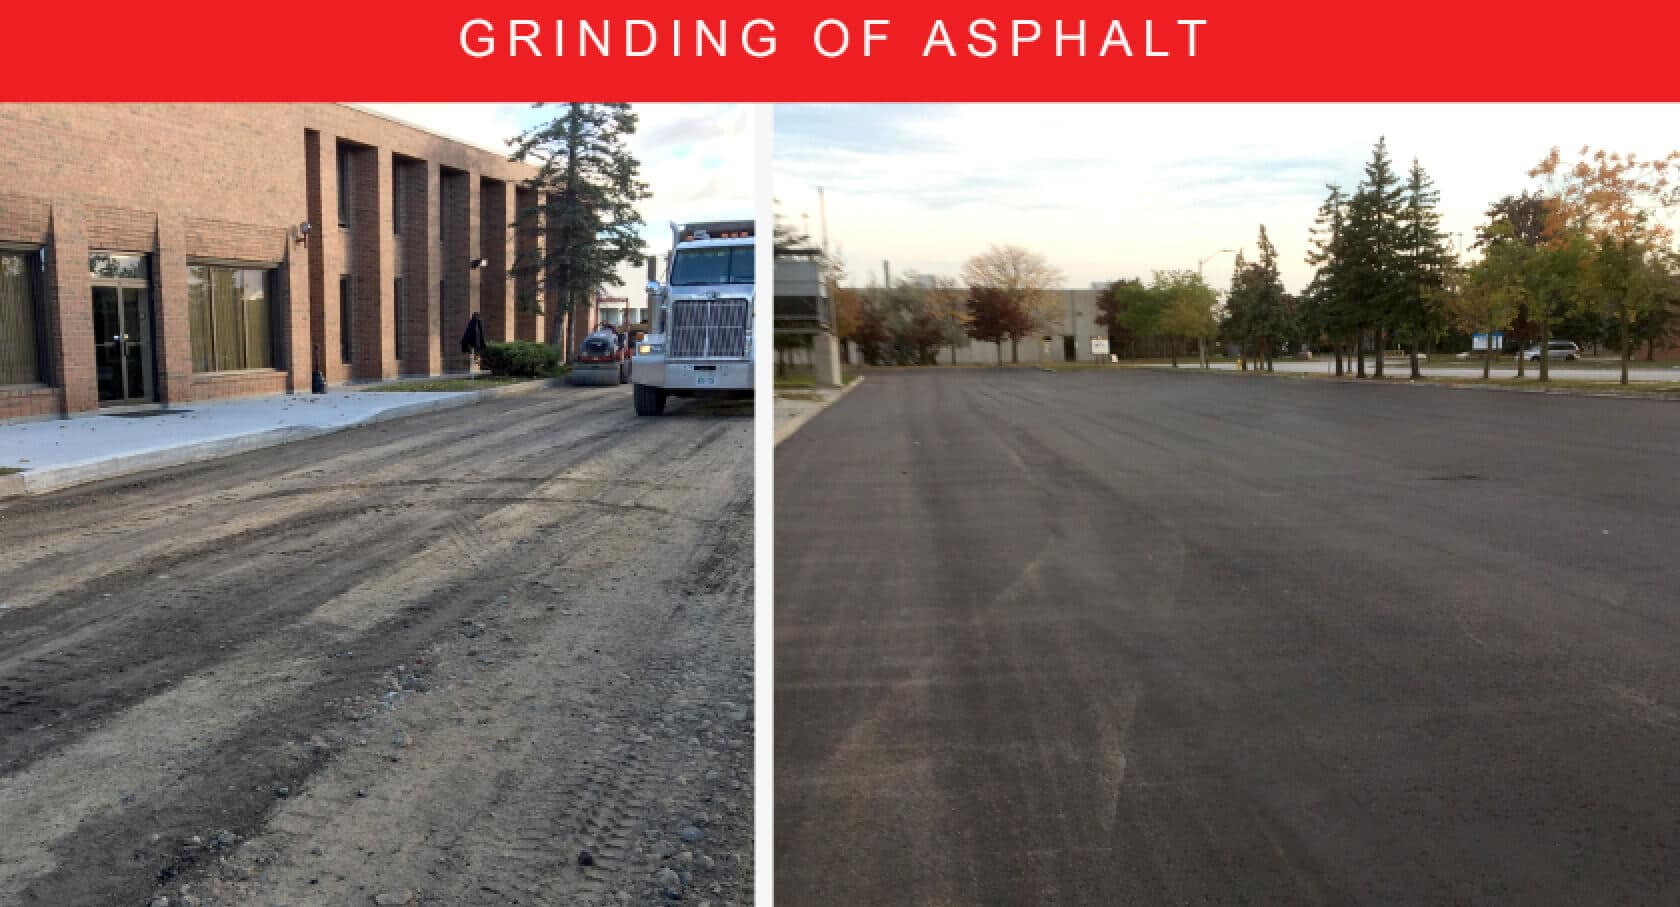 Asphalt Parking Lot Toronto Asphalt Grinding